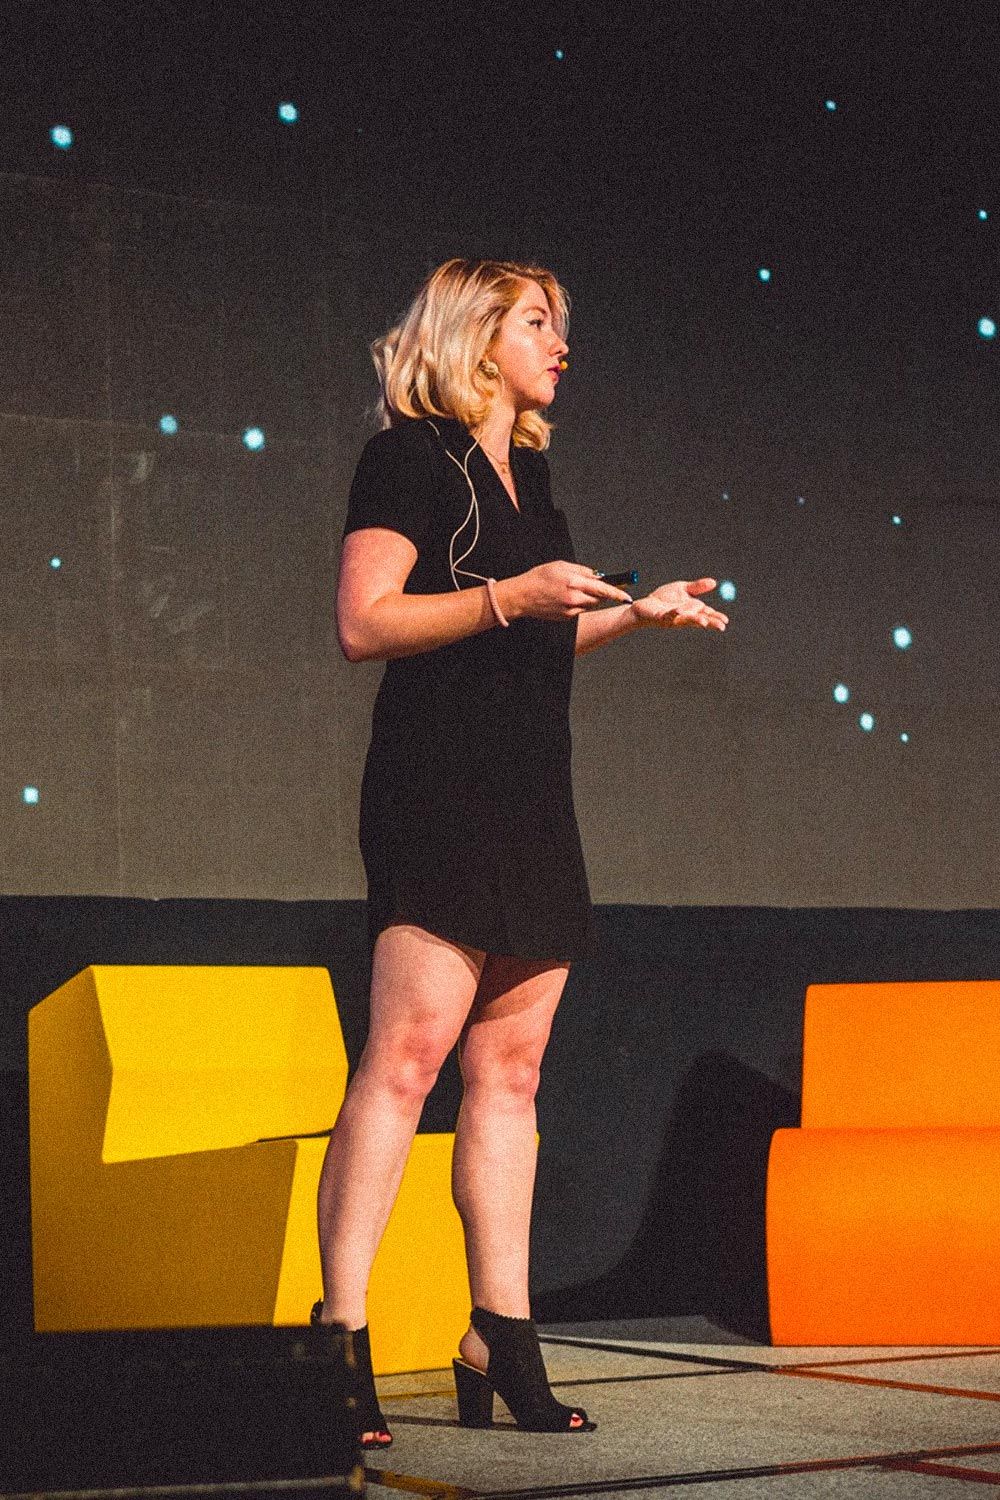 Speaker from UX+ Conference 2019